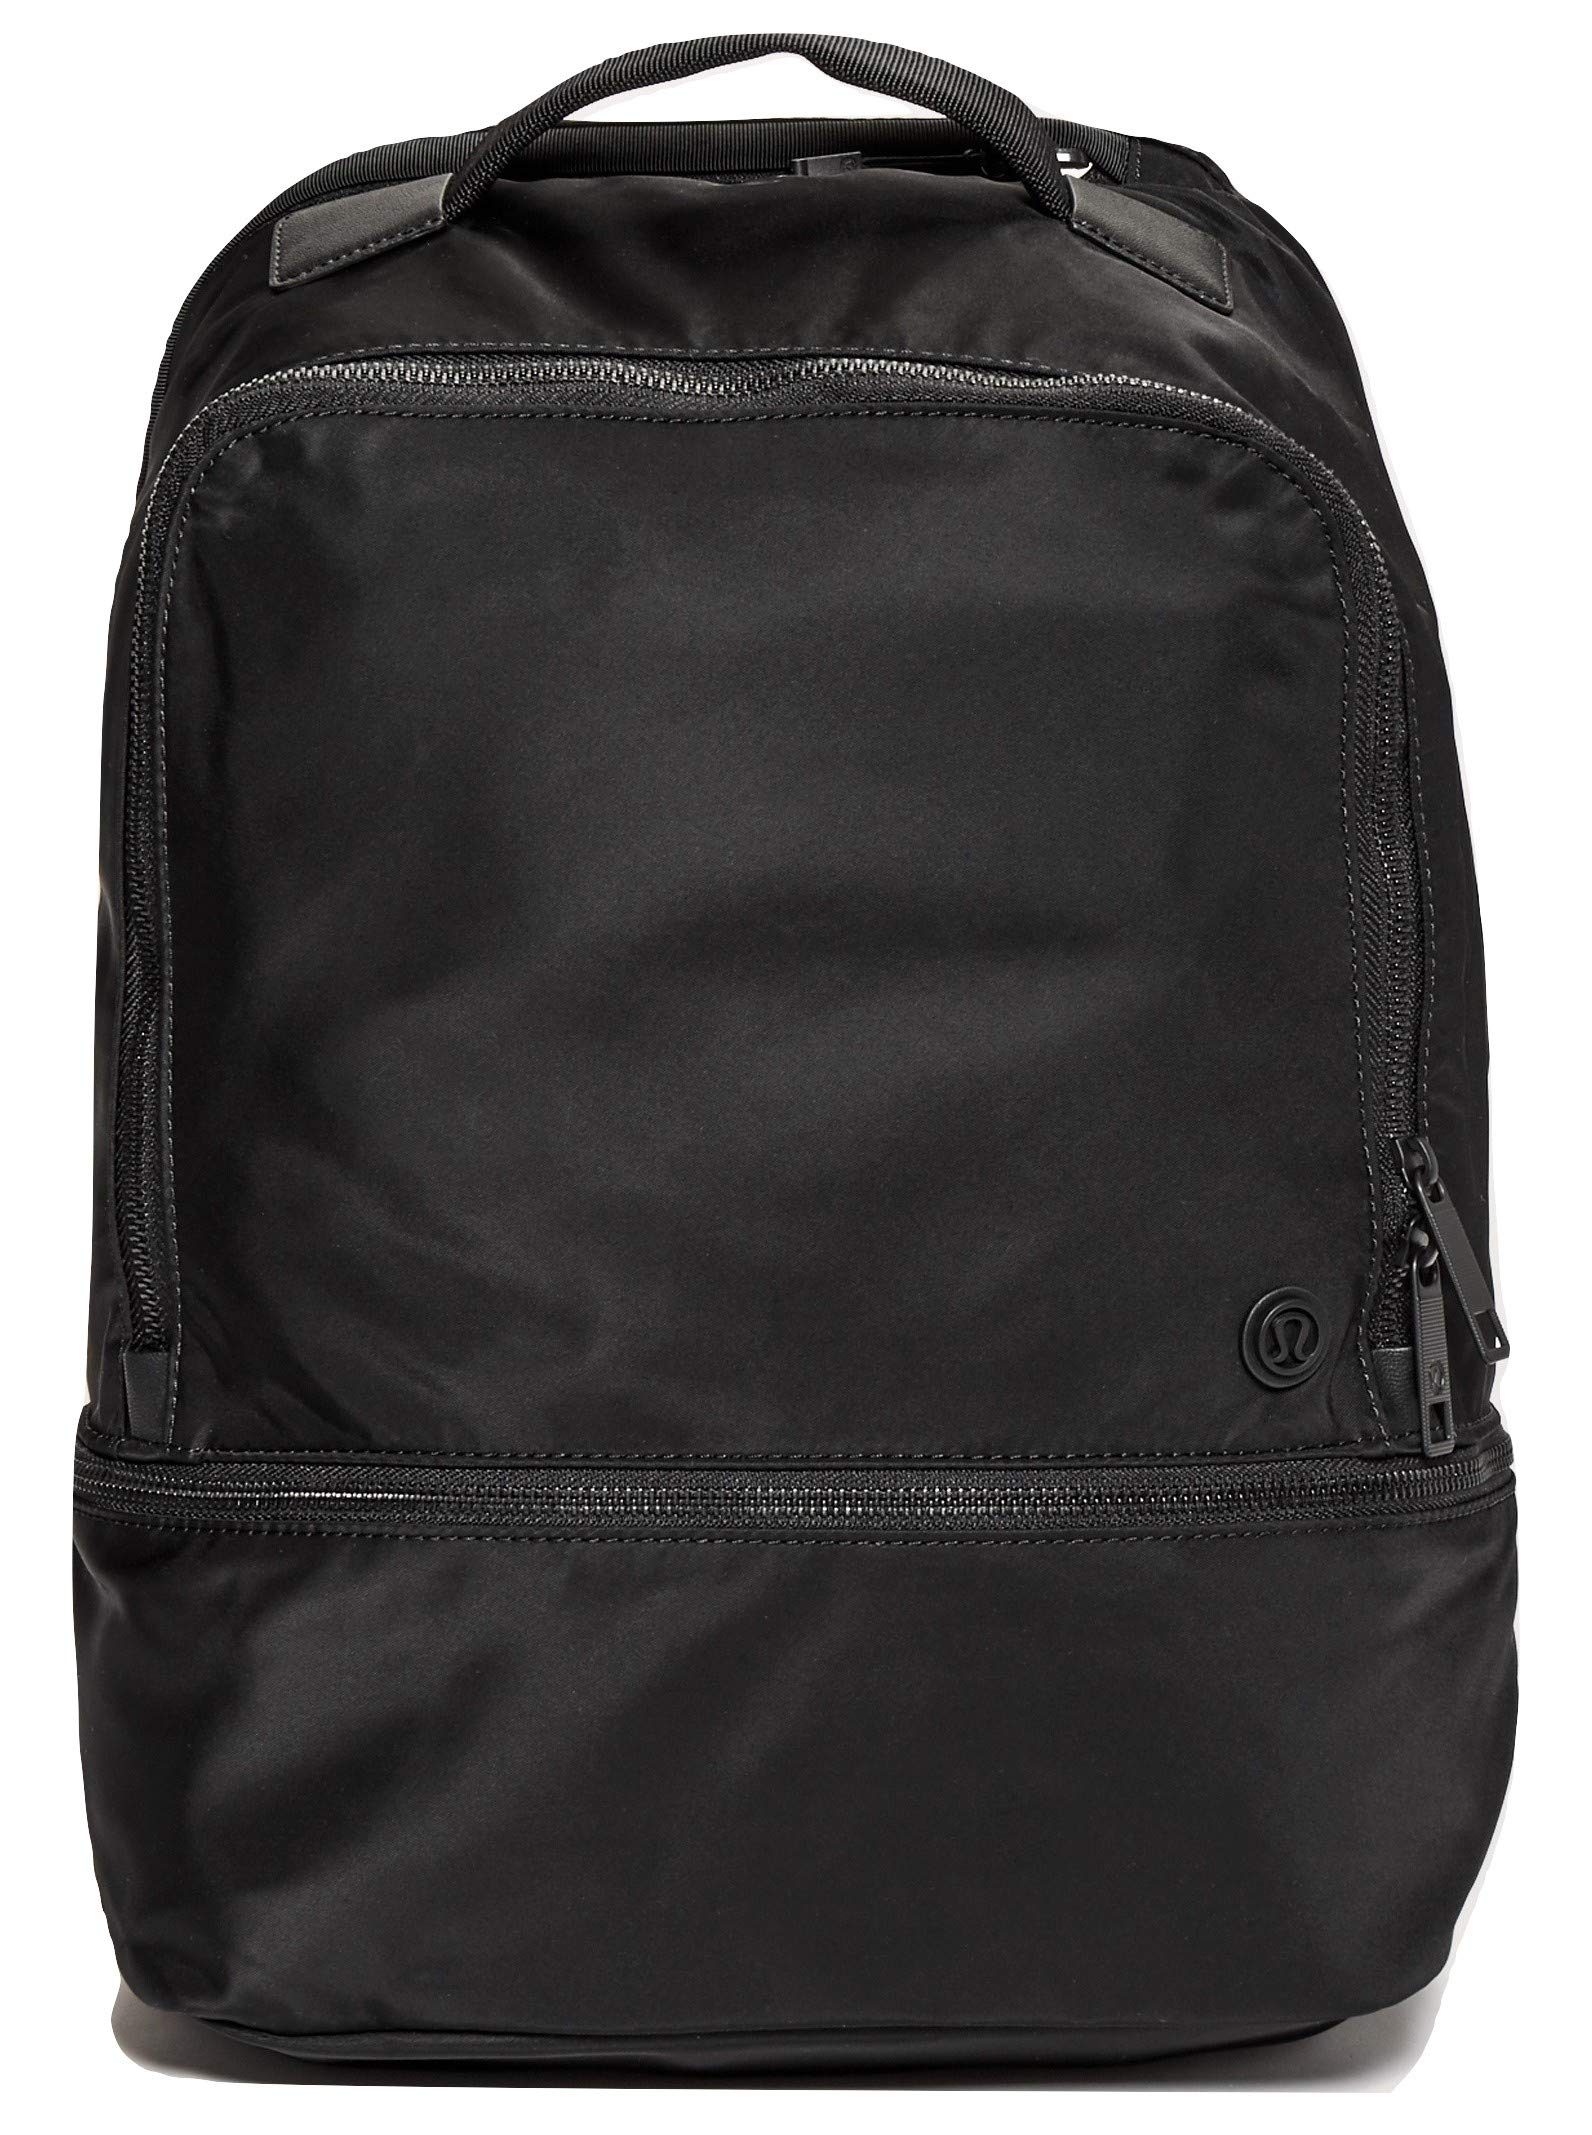 Lululemon City Adventurer Backpack (Black)